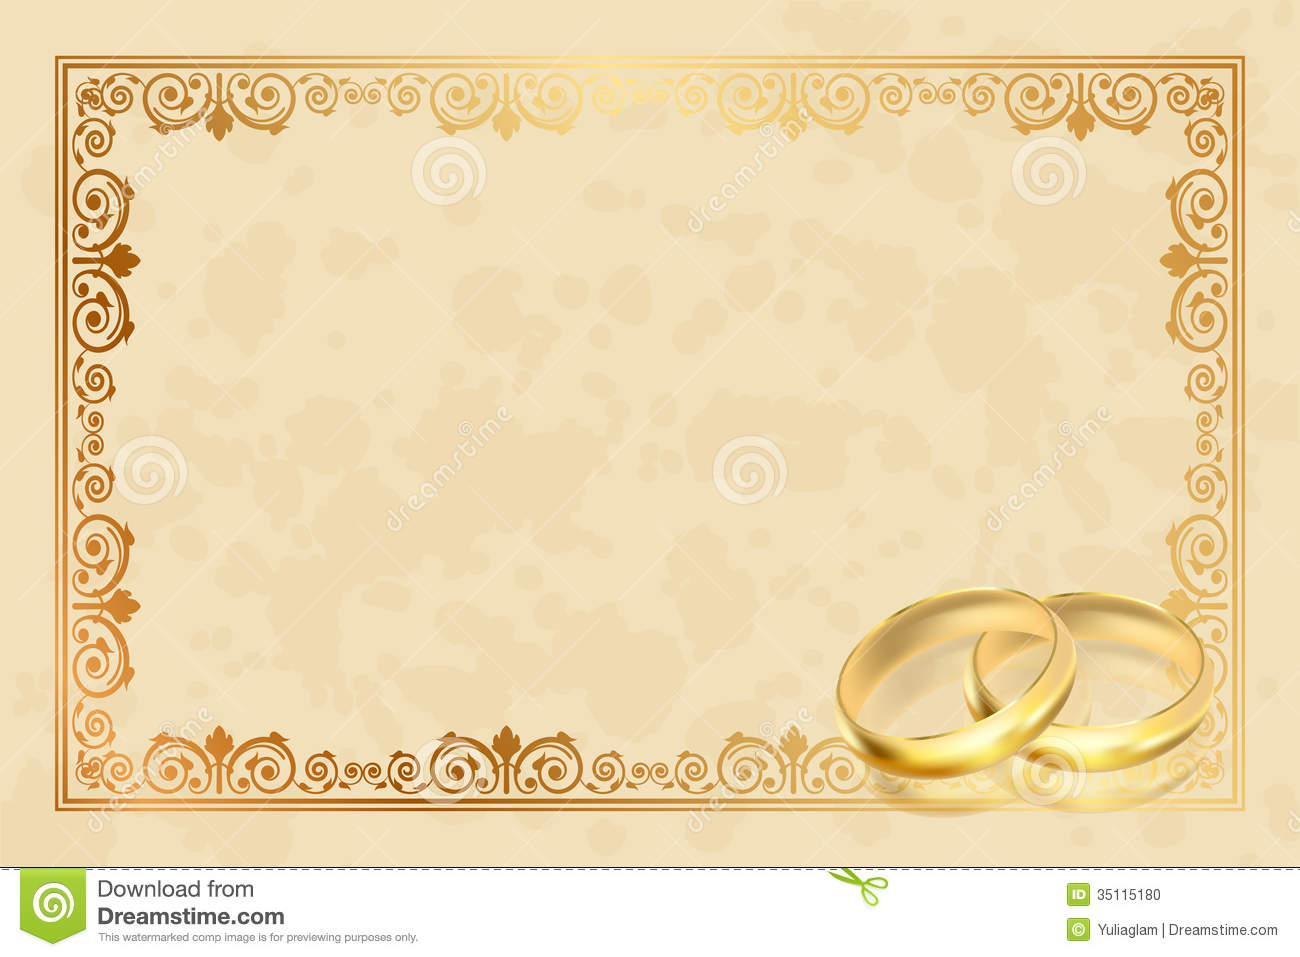 Ring Ceremony Hd Wallpaper Parchment Frame With Gold Rings Stock Vector